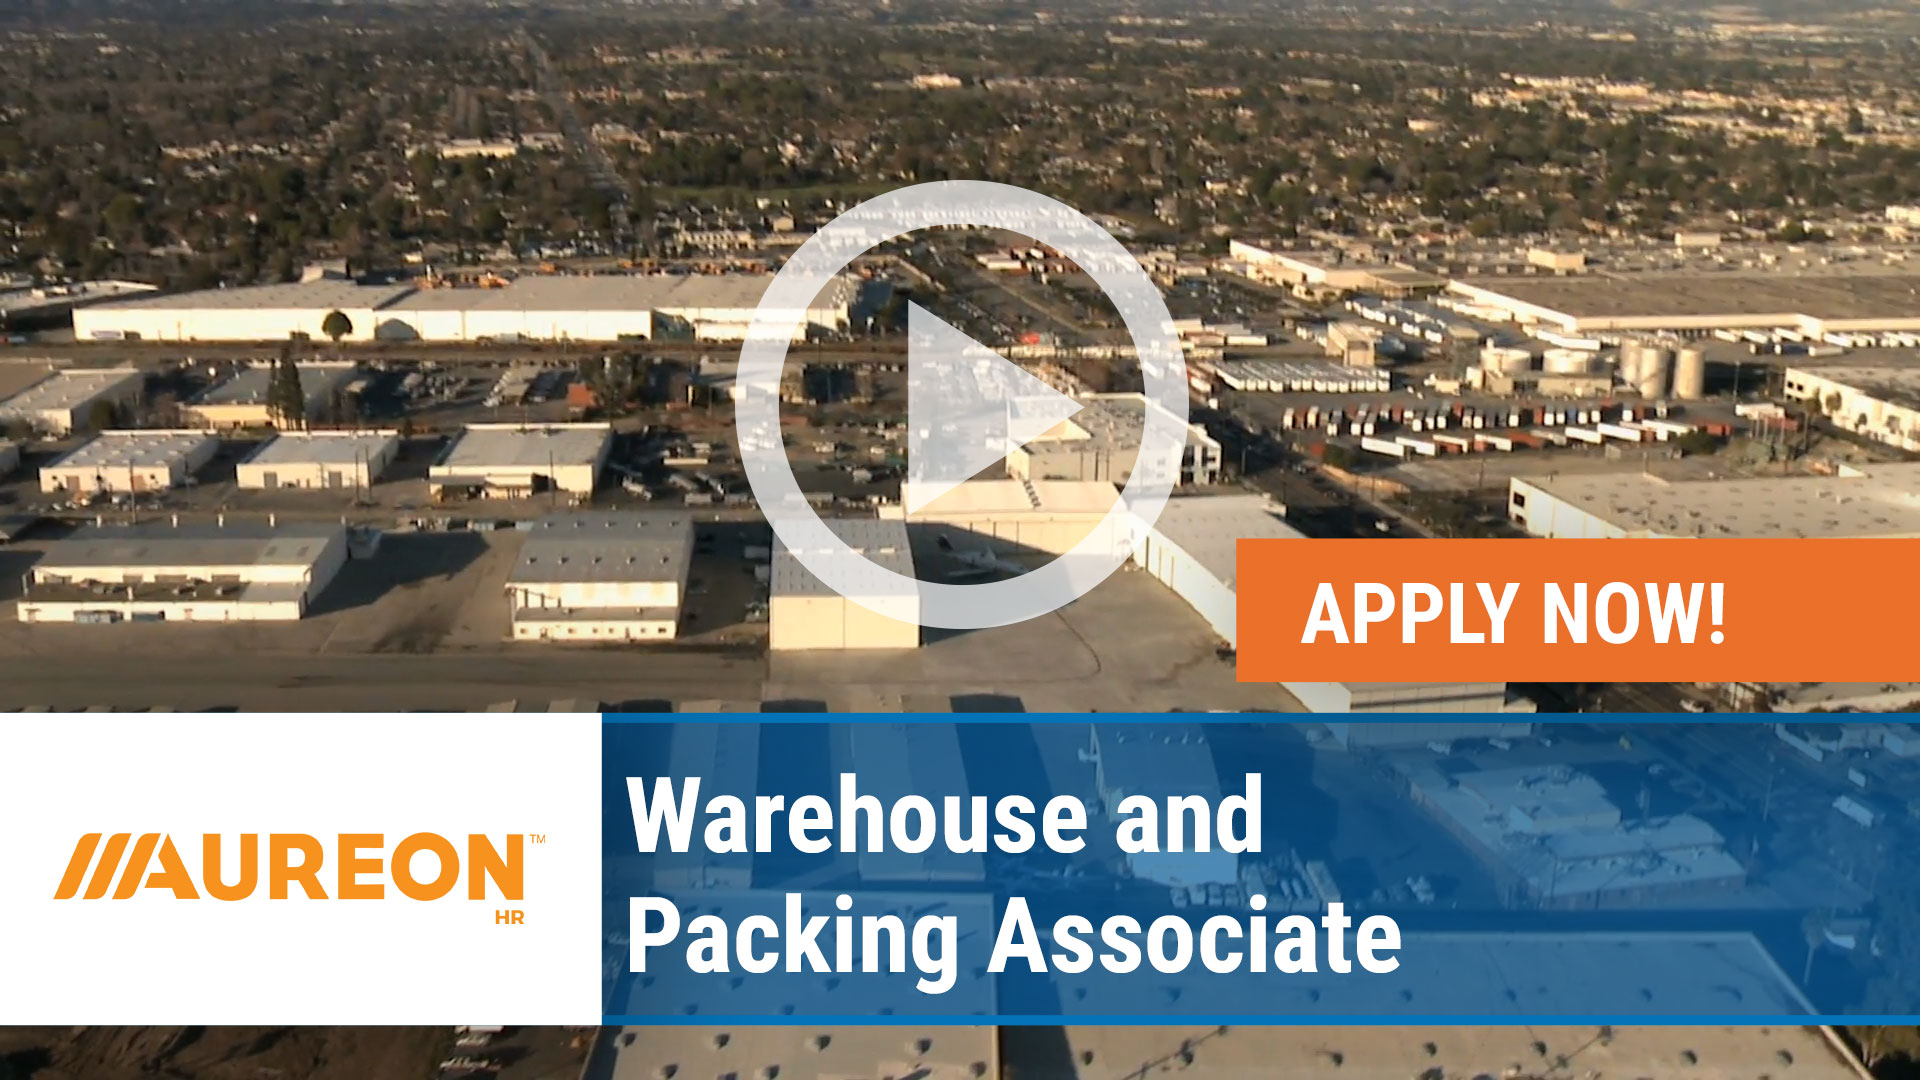 Watch our careers video for available job opening Warehouse and Packing Associate in Des Moines,  IA